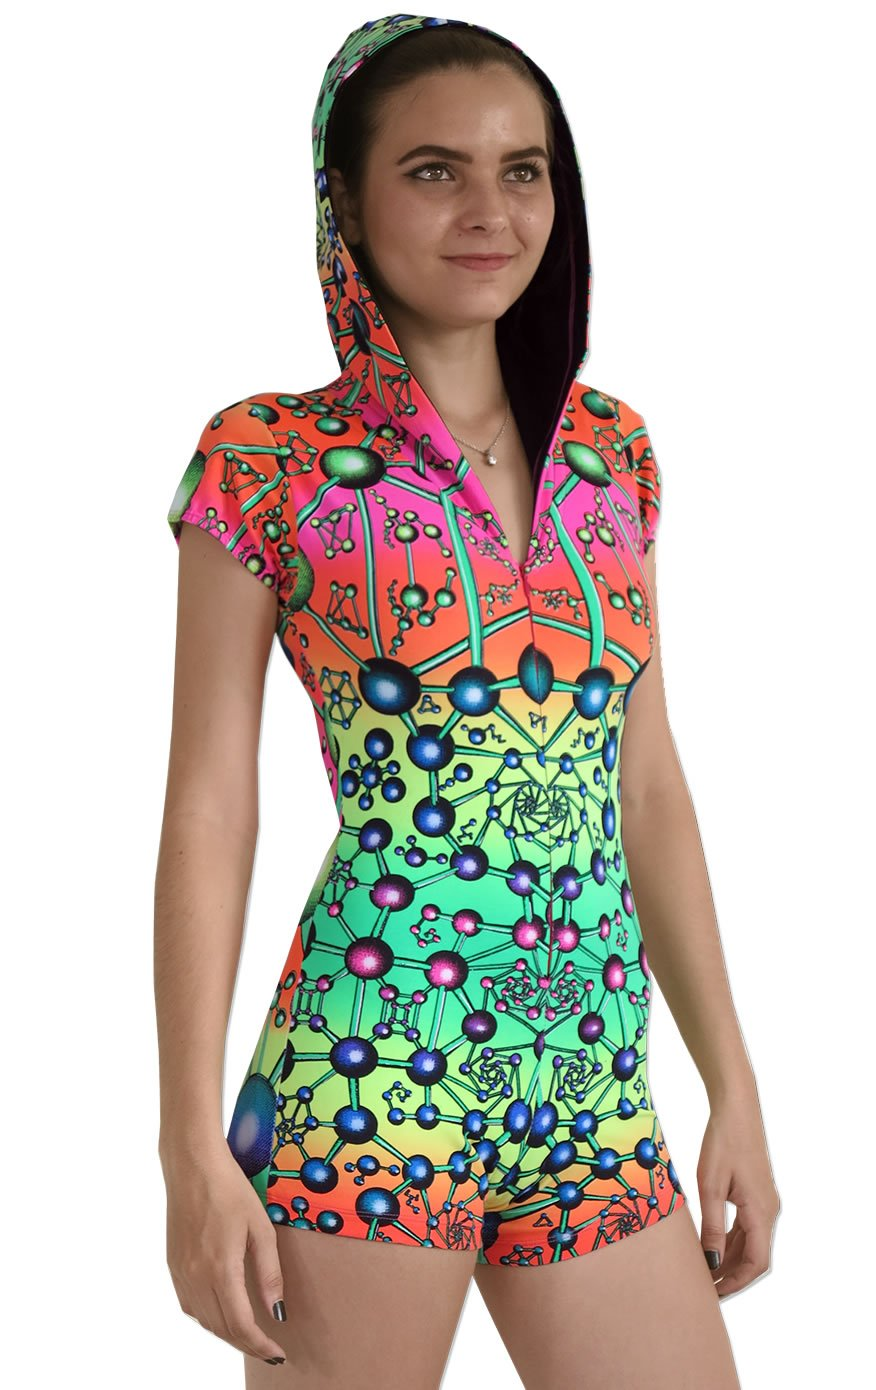 Hooded Playsuit : Atomic Rainbow - Women Catsuits - Space Tribe